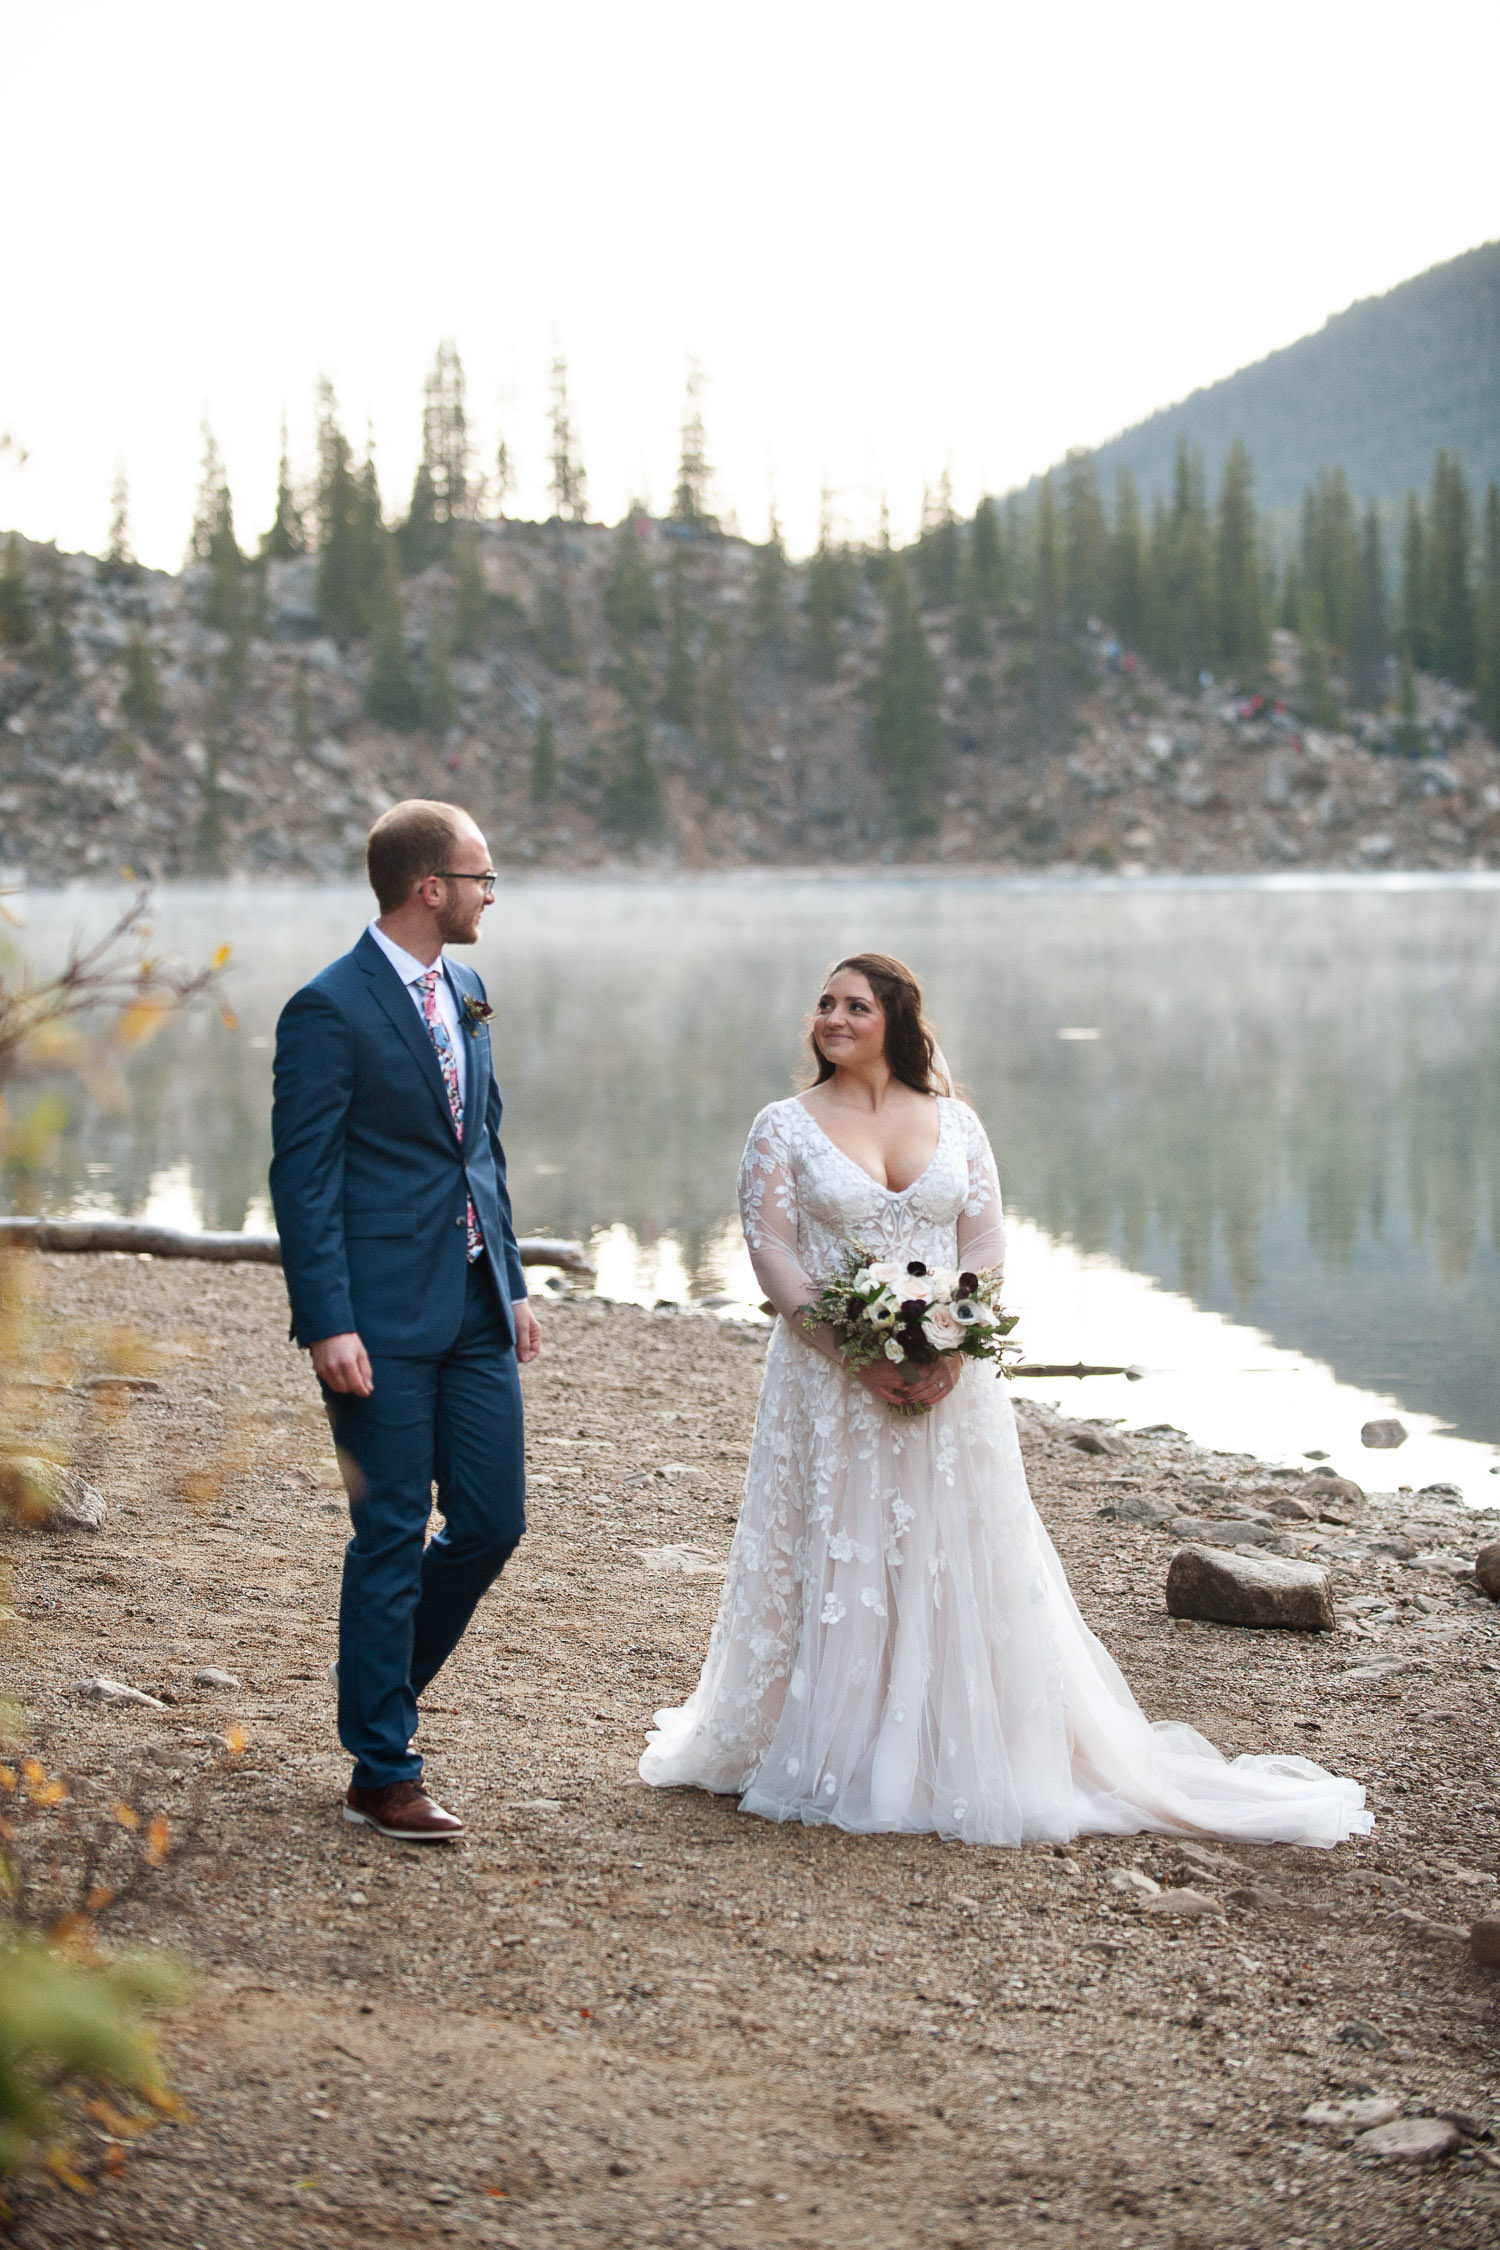 First look at a Moraine Lake elopement captured by Tara Whittaker Photography